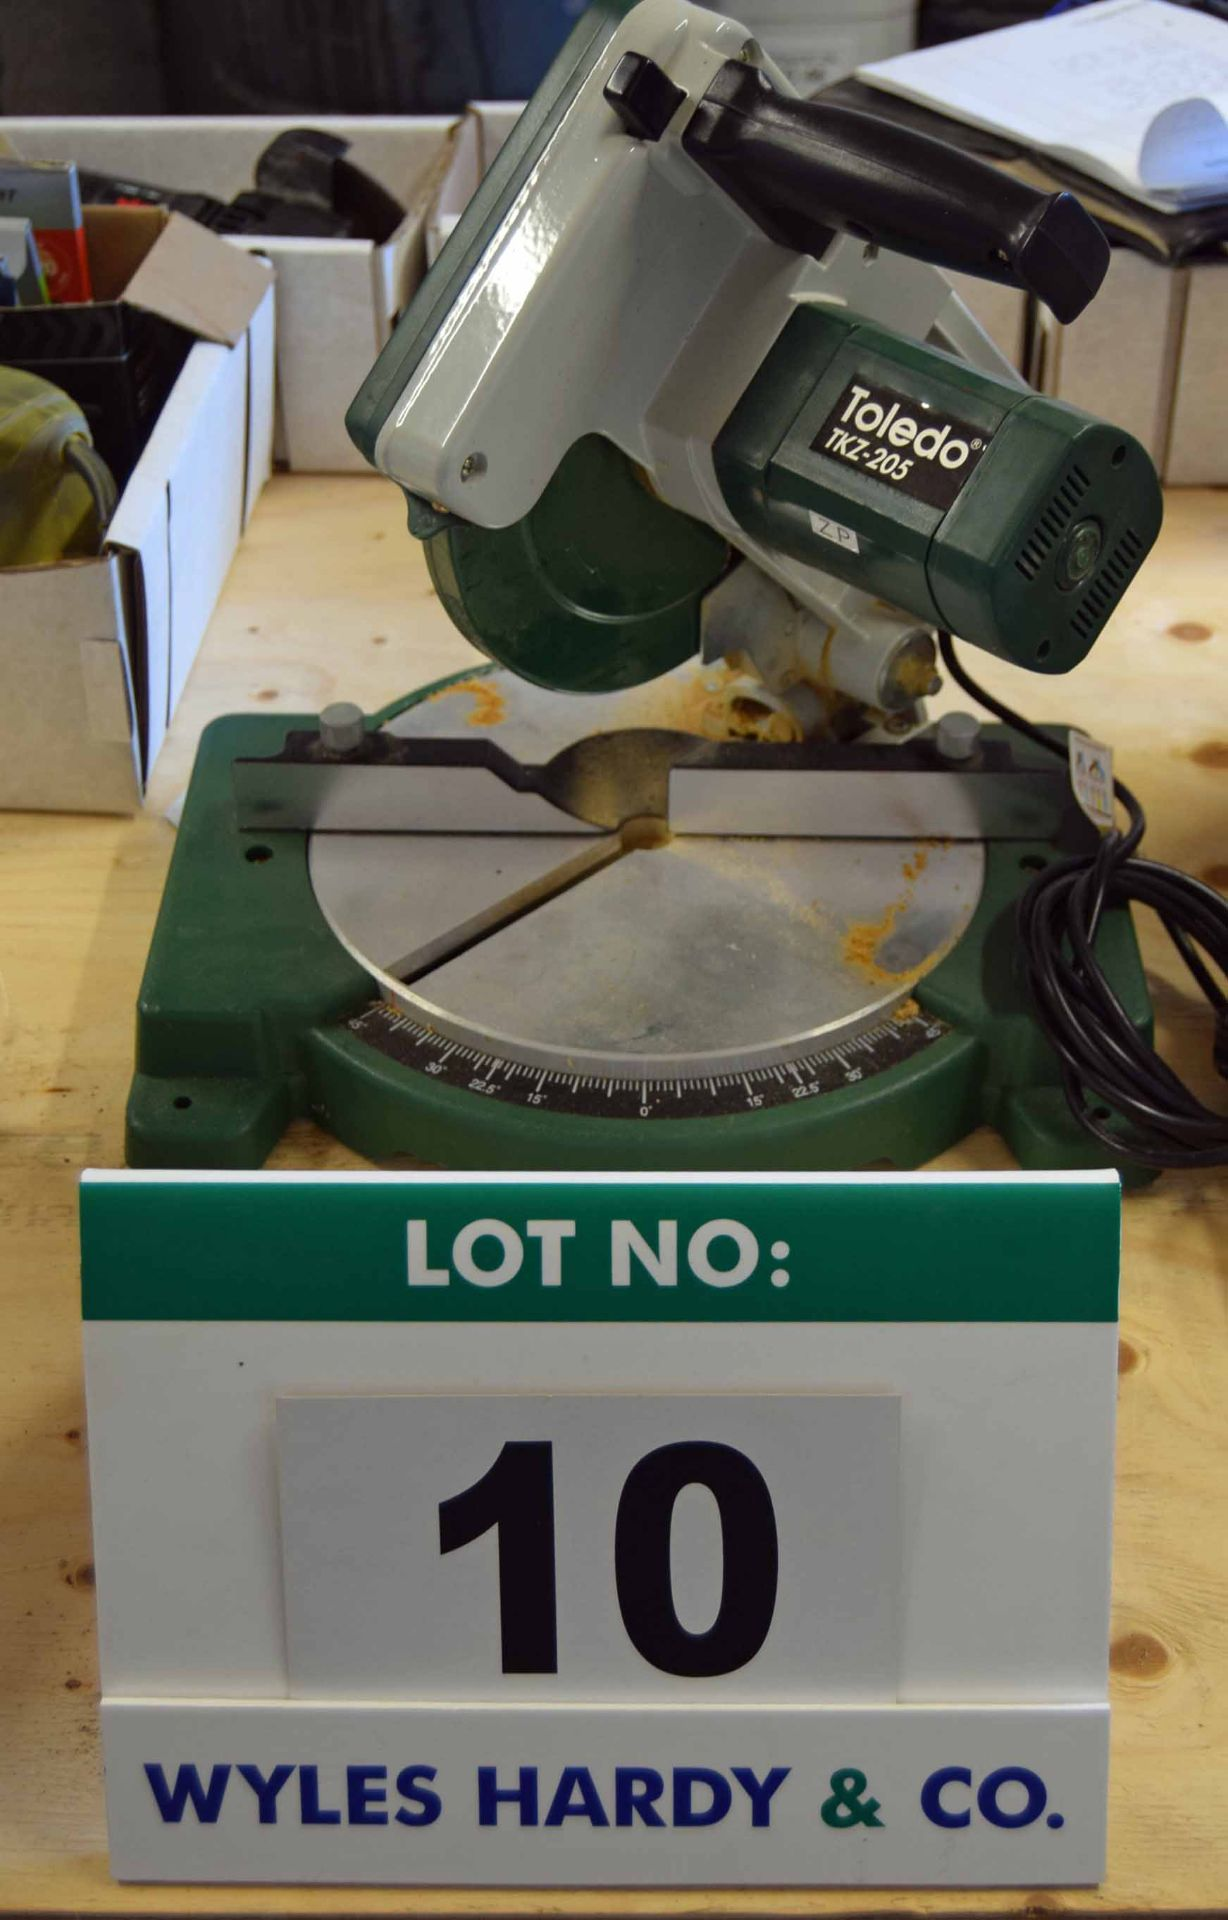 Lot 10 - A TOLEDO TKZ-205 240V AC Benchtop 205mm Chop Action Circular Saw with Mitre and Compound Mitre